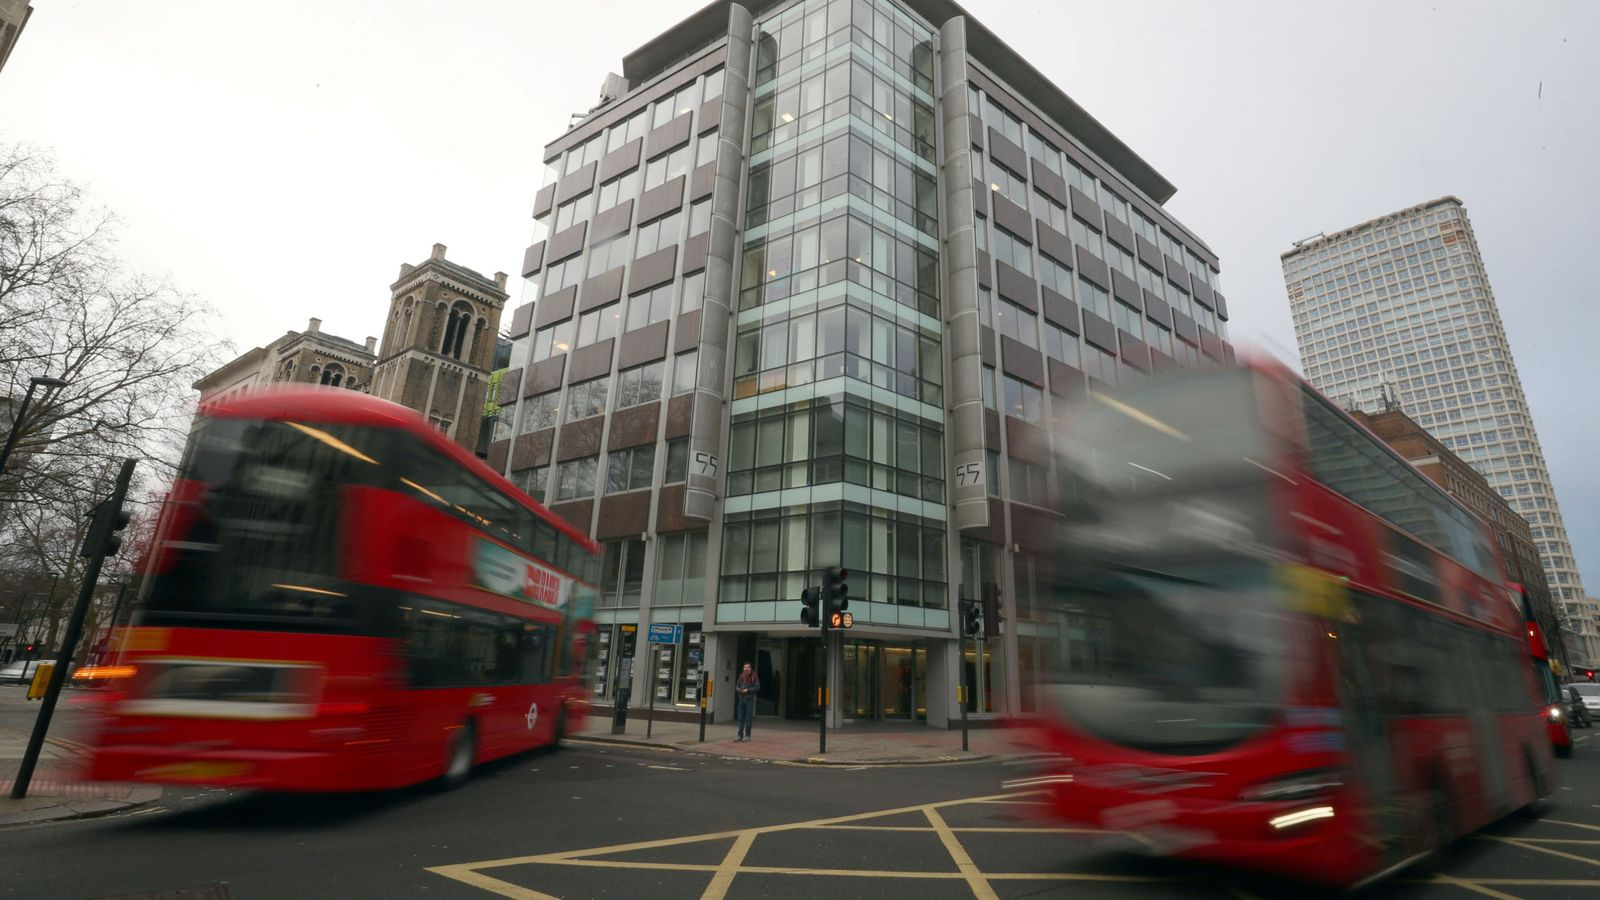 Foto: Sede central de Cambridge Analytica en Londres, el 23 de marzo de 2018. (Reuters)